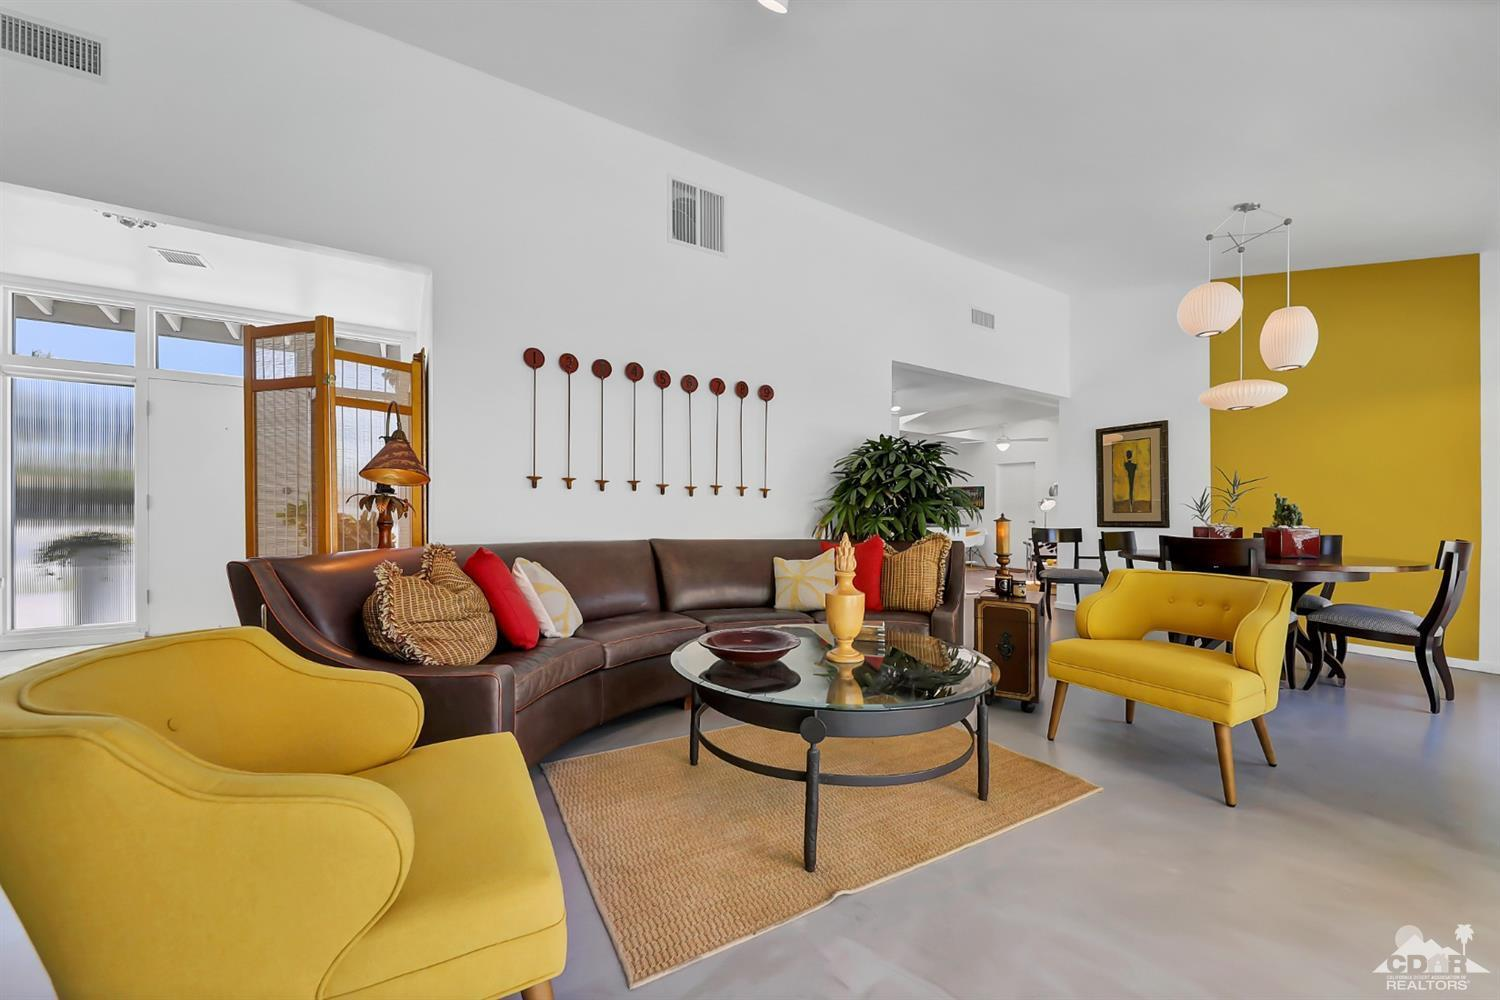 333 N Farrell Drive, Palm Springs, California 92262, 3 Bedrooms Bedrooms, ,2 BathroomsBathrooms,Residential,Sold,333 N Farrell Drive,219012979